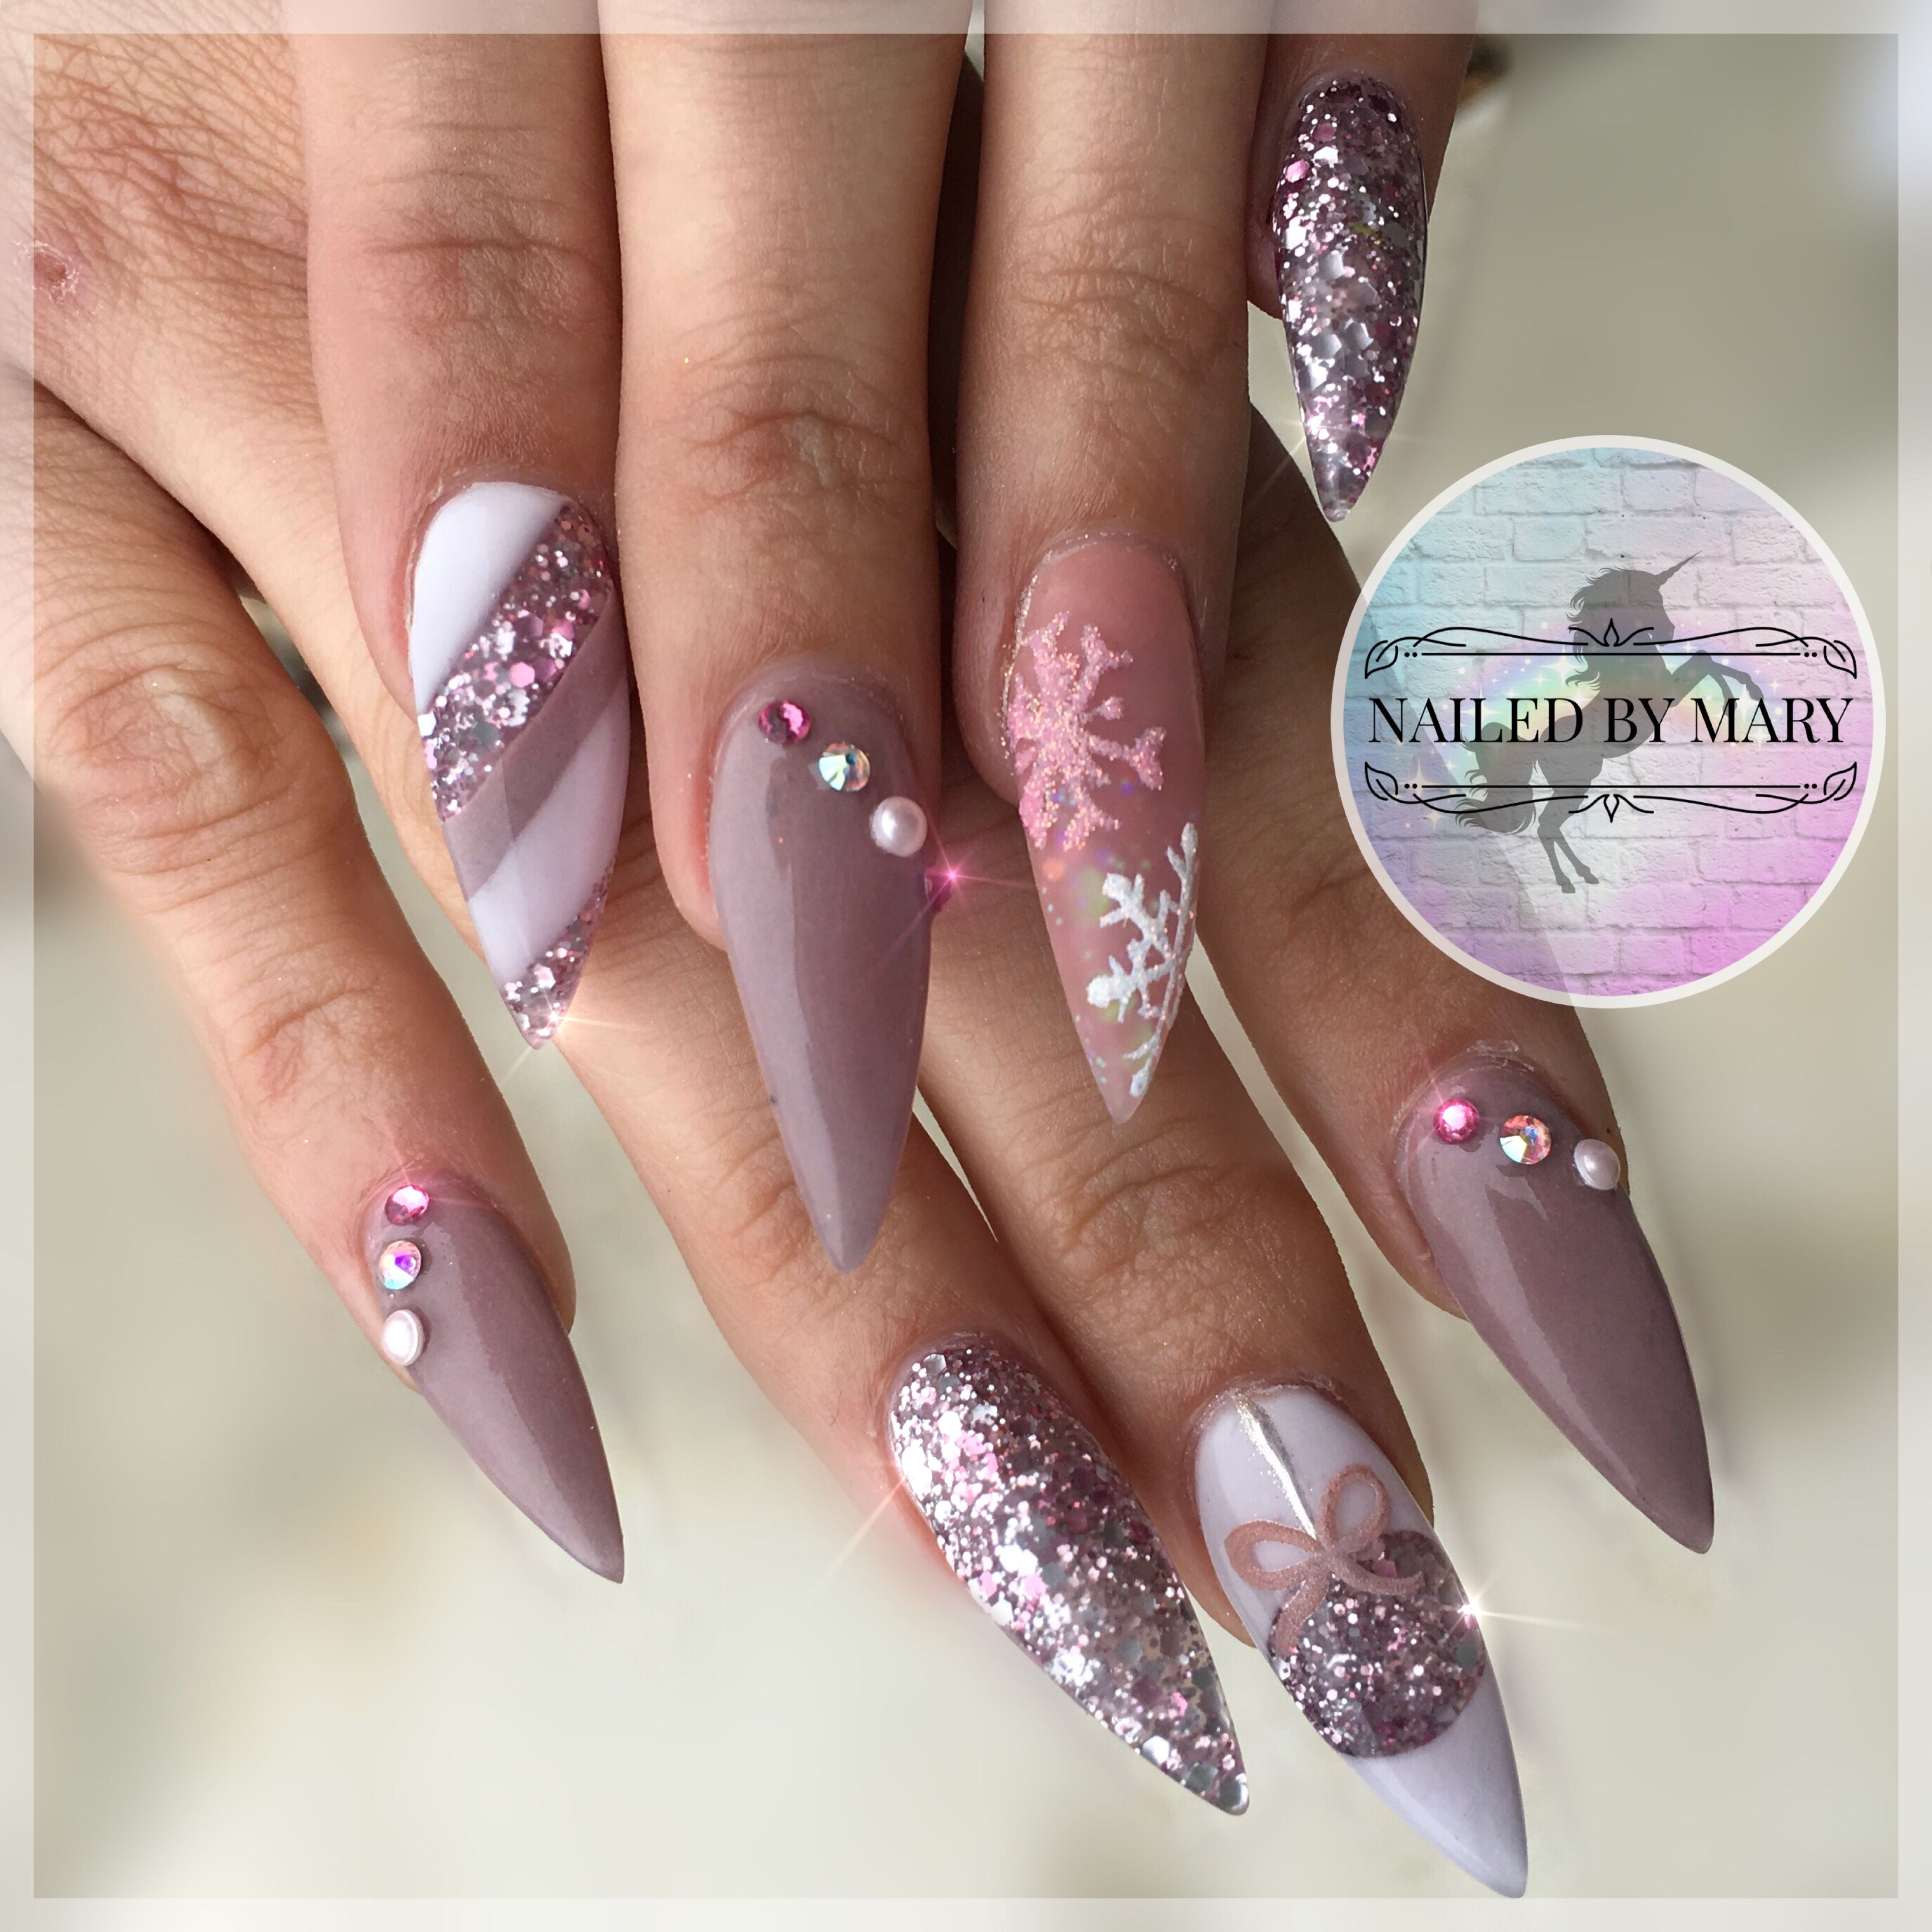 Christmas Diy Nail Ideas And More Of Our Manicures From: Pin On Nailed By Mary